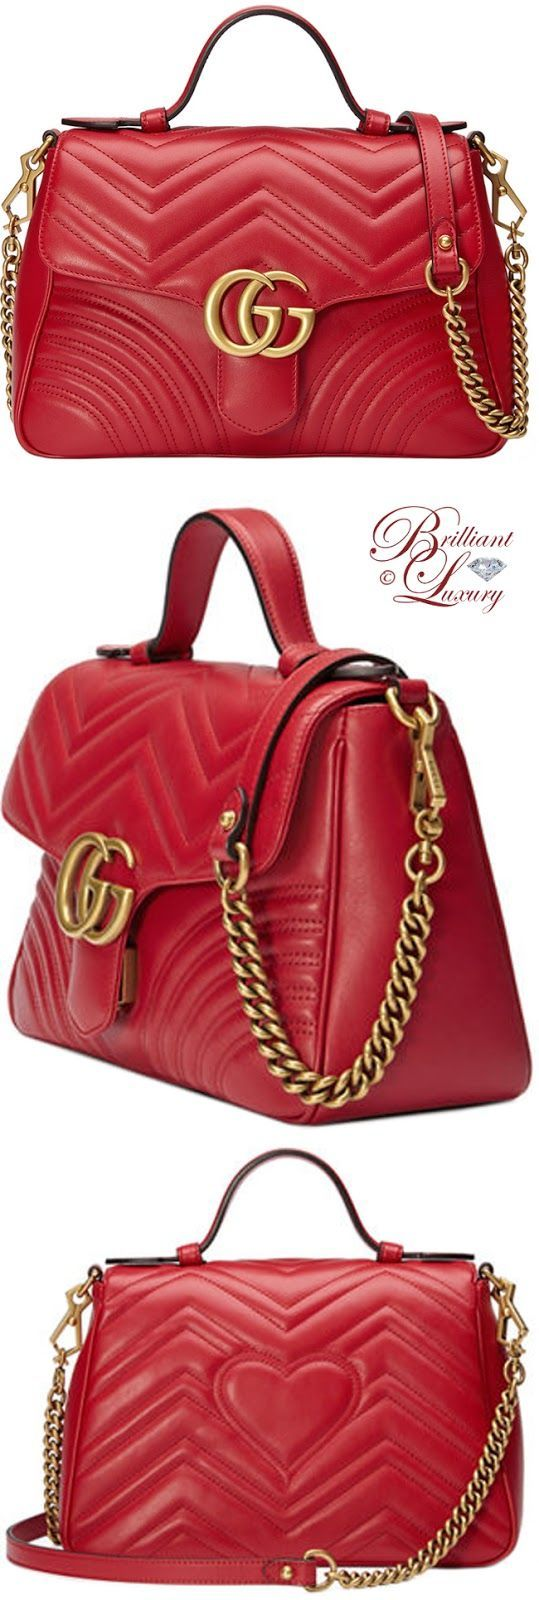 a6a686c863bf Brilliant Luxury ♢ Gucci GG Marmont Small Chevron Quilted Top-Handle Bag  with Chain Strap